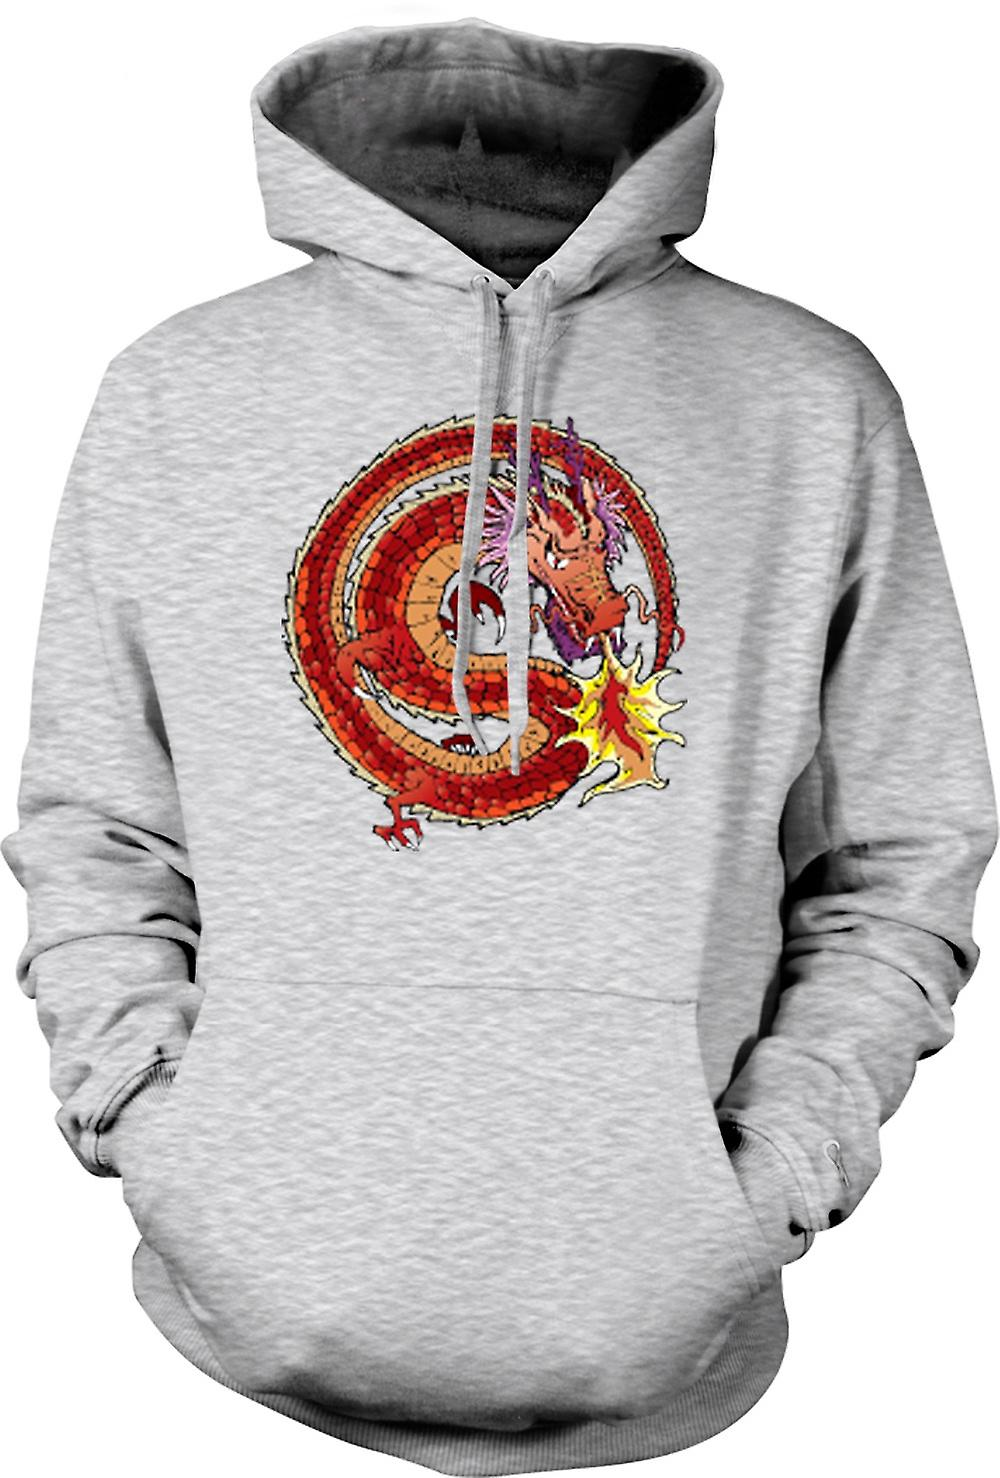 Mens Hoodie - Dragon chinois conception traditionnelle